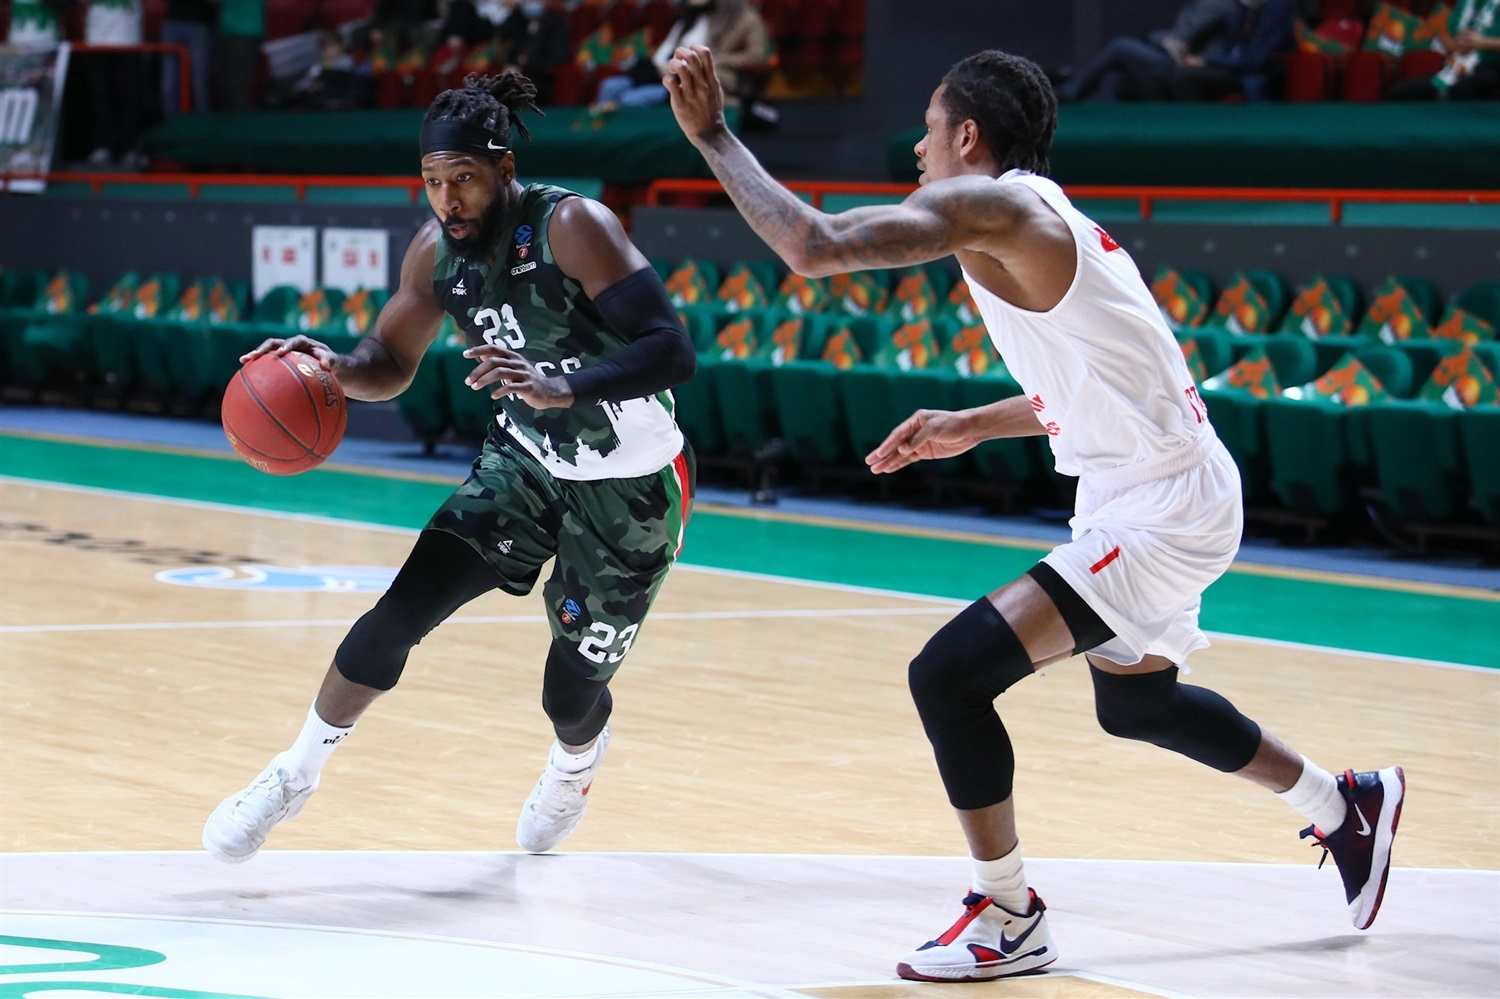 John Hollard - UNICS Kazan (photo UNICS) - EC20